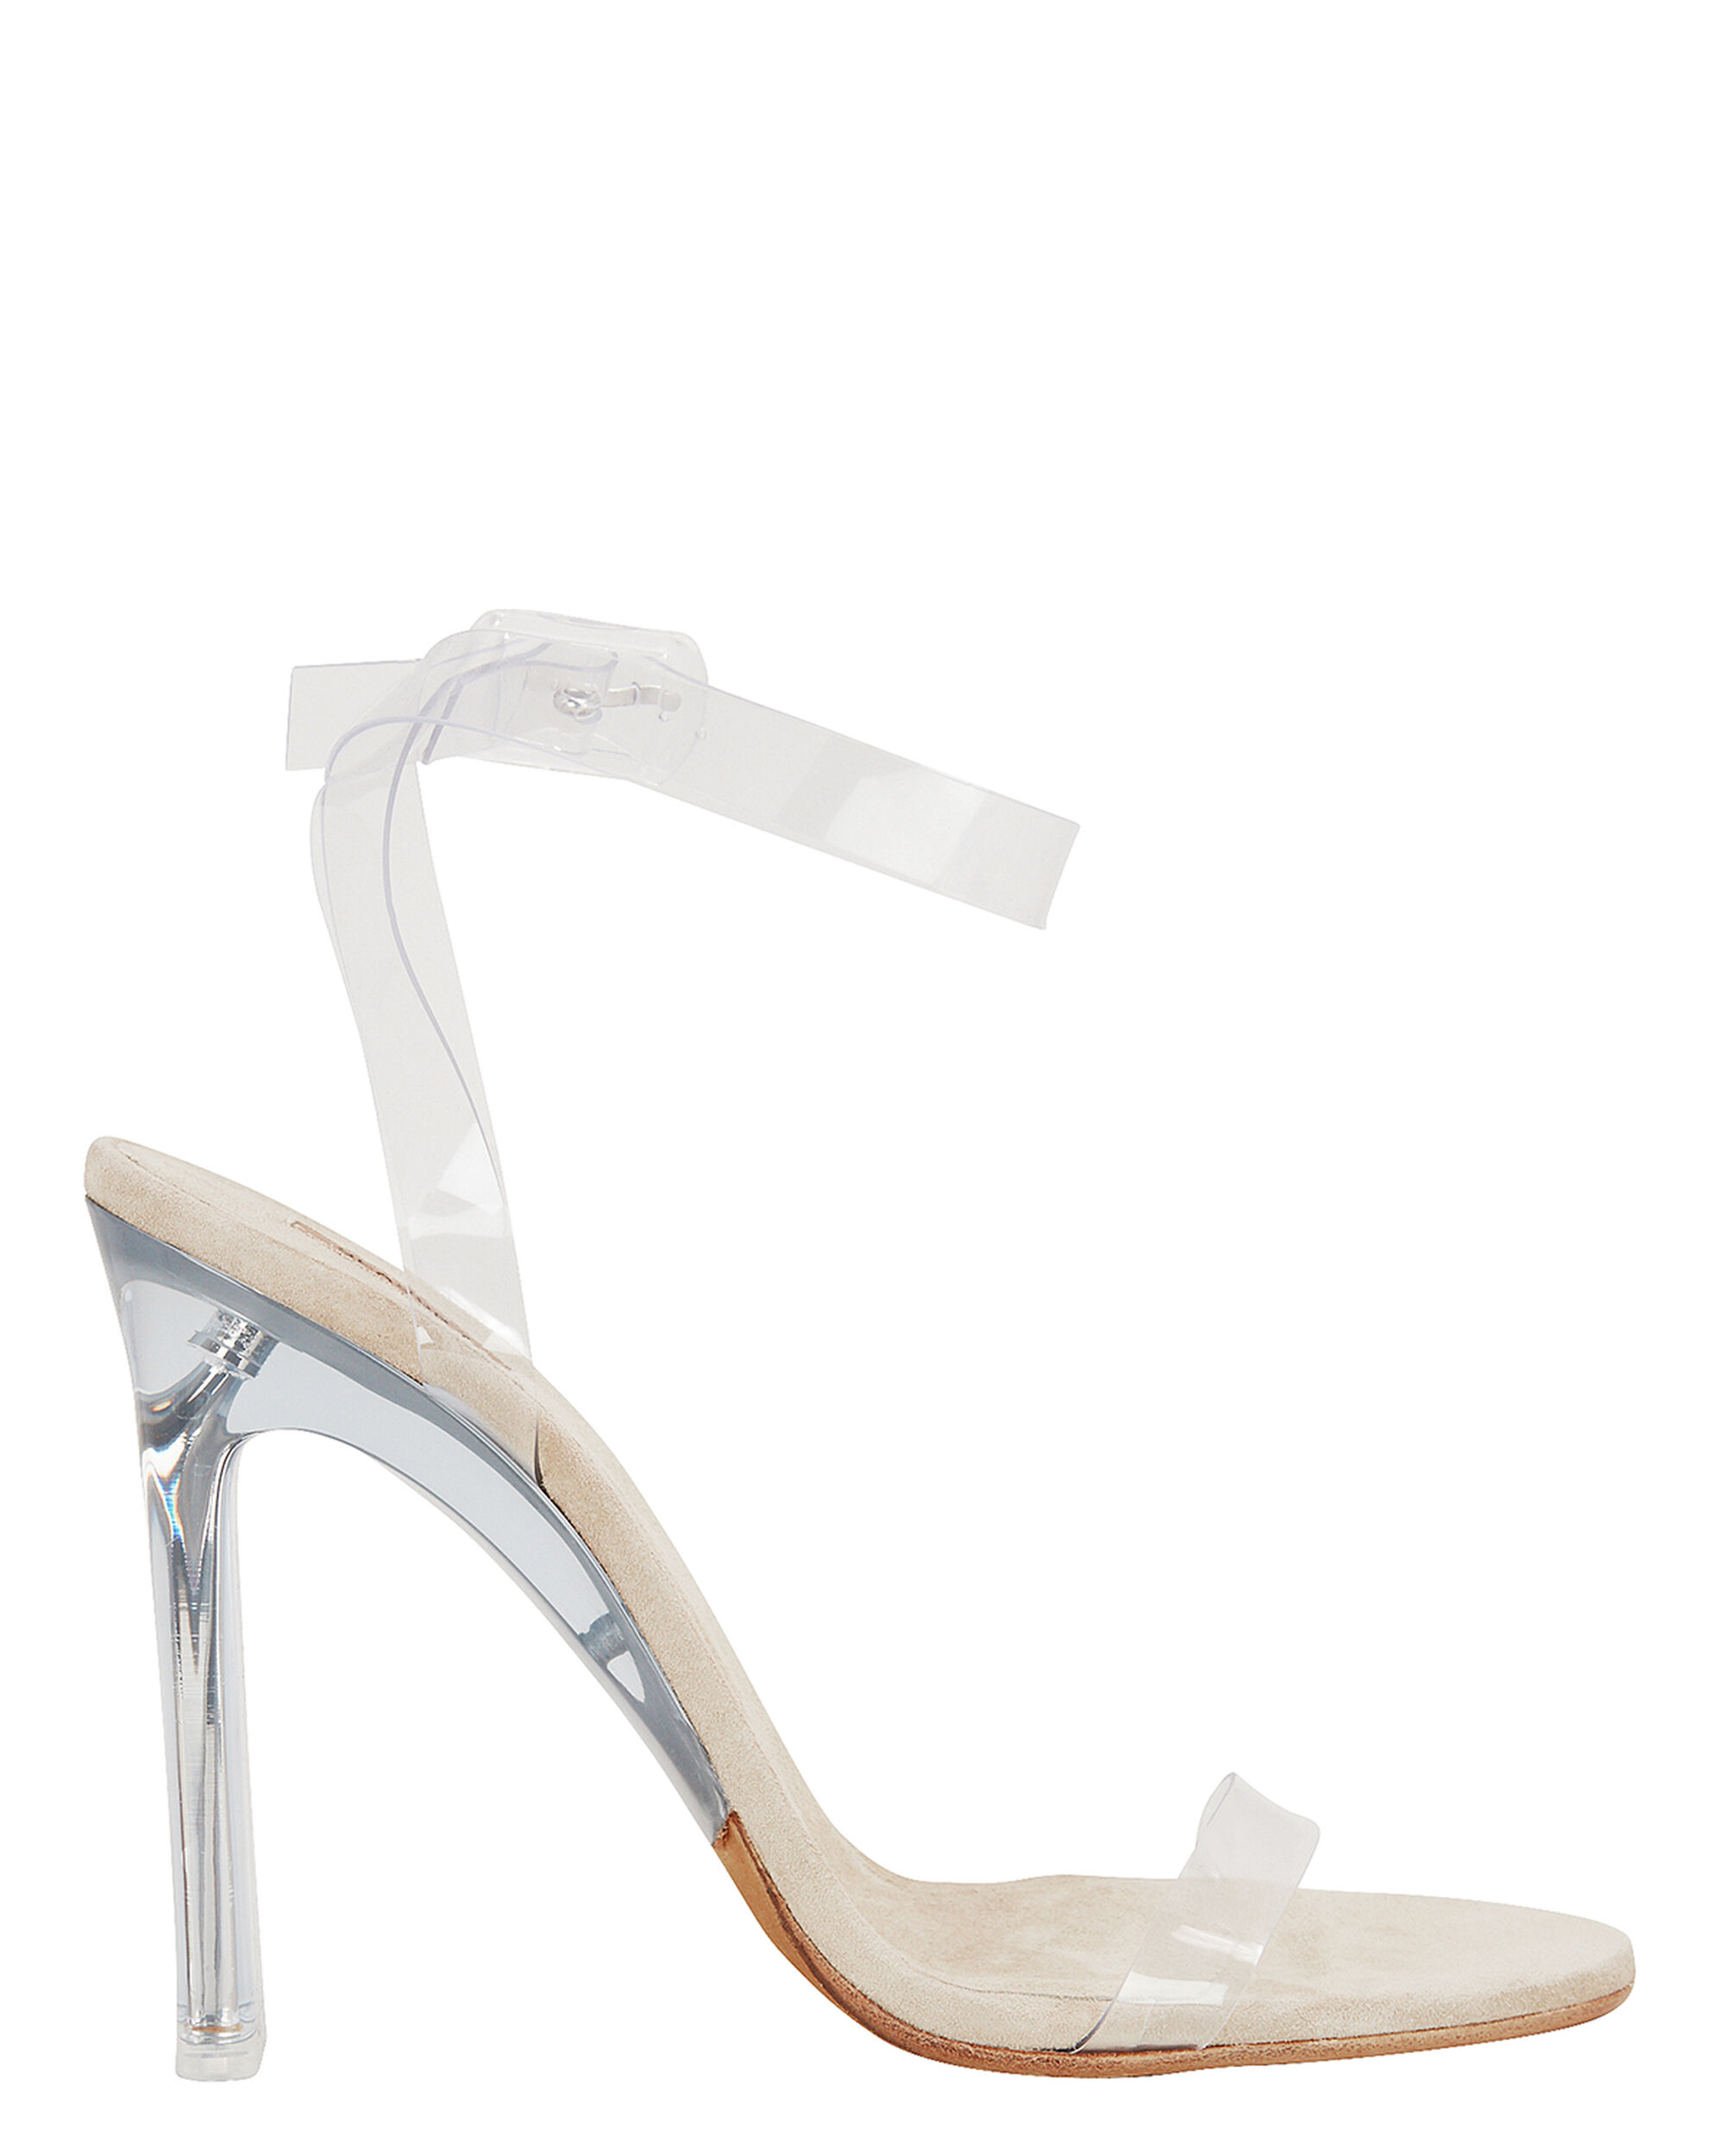 CLEAR PVC ANKLE STRAP SANDALS CLEAR